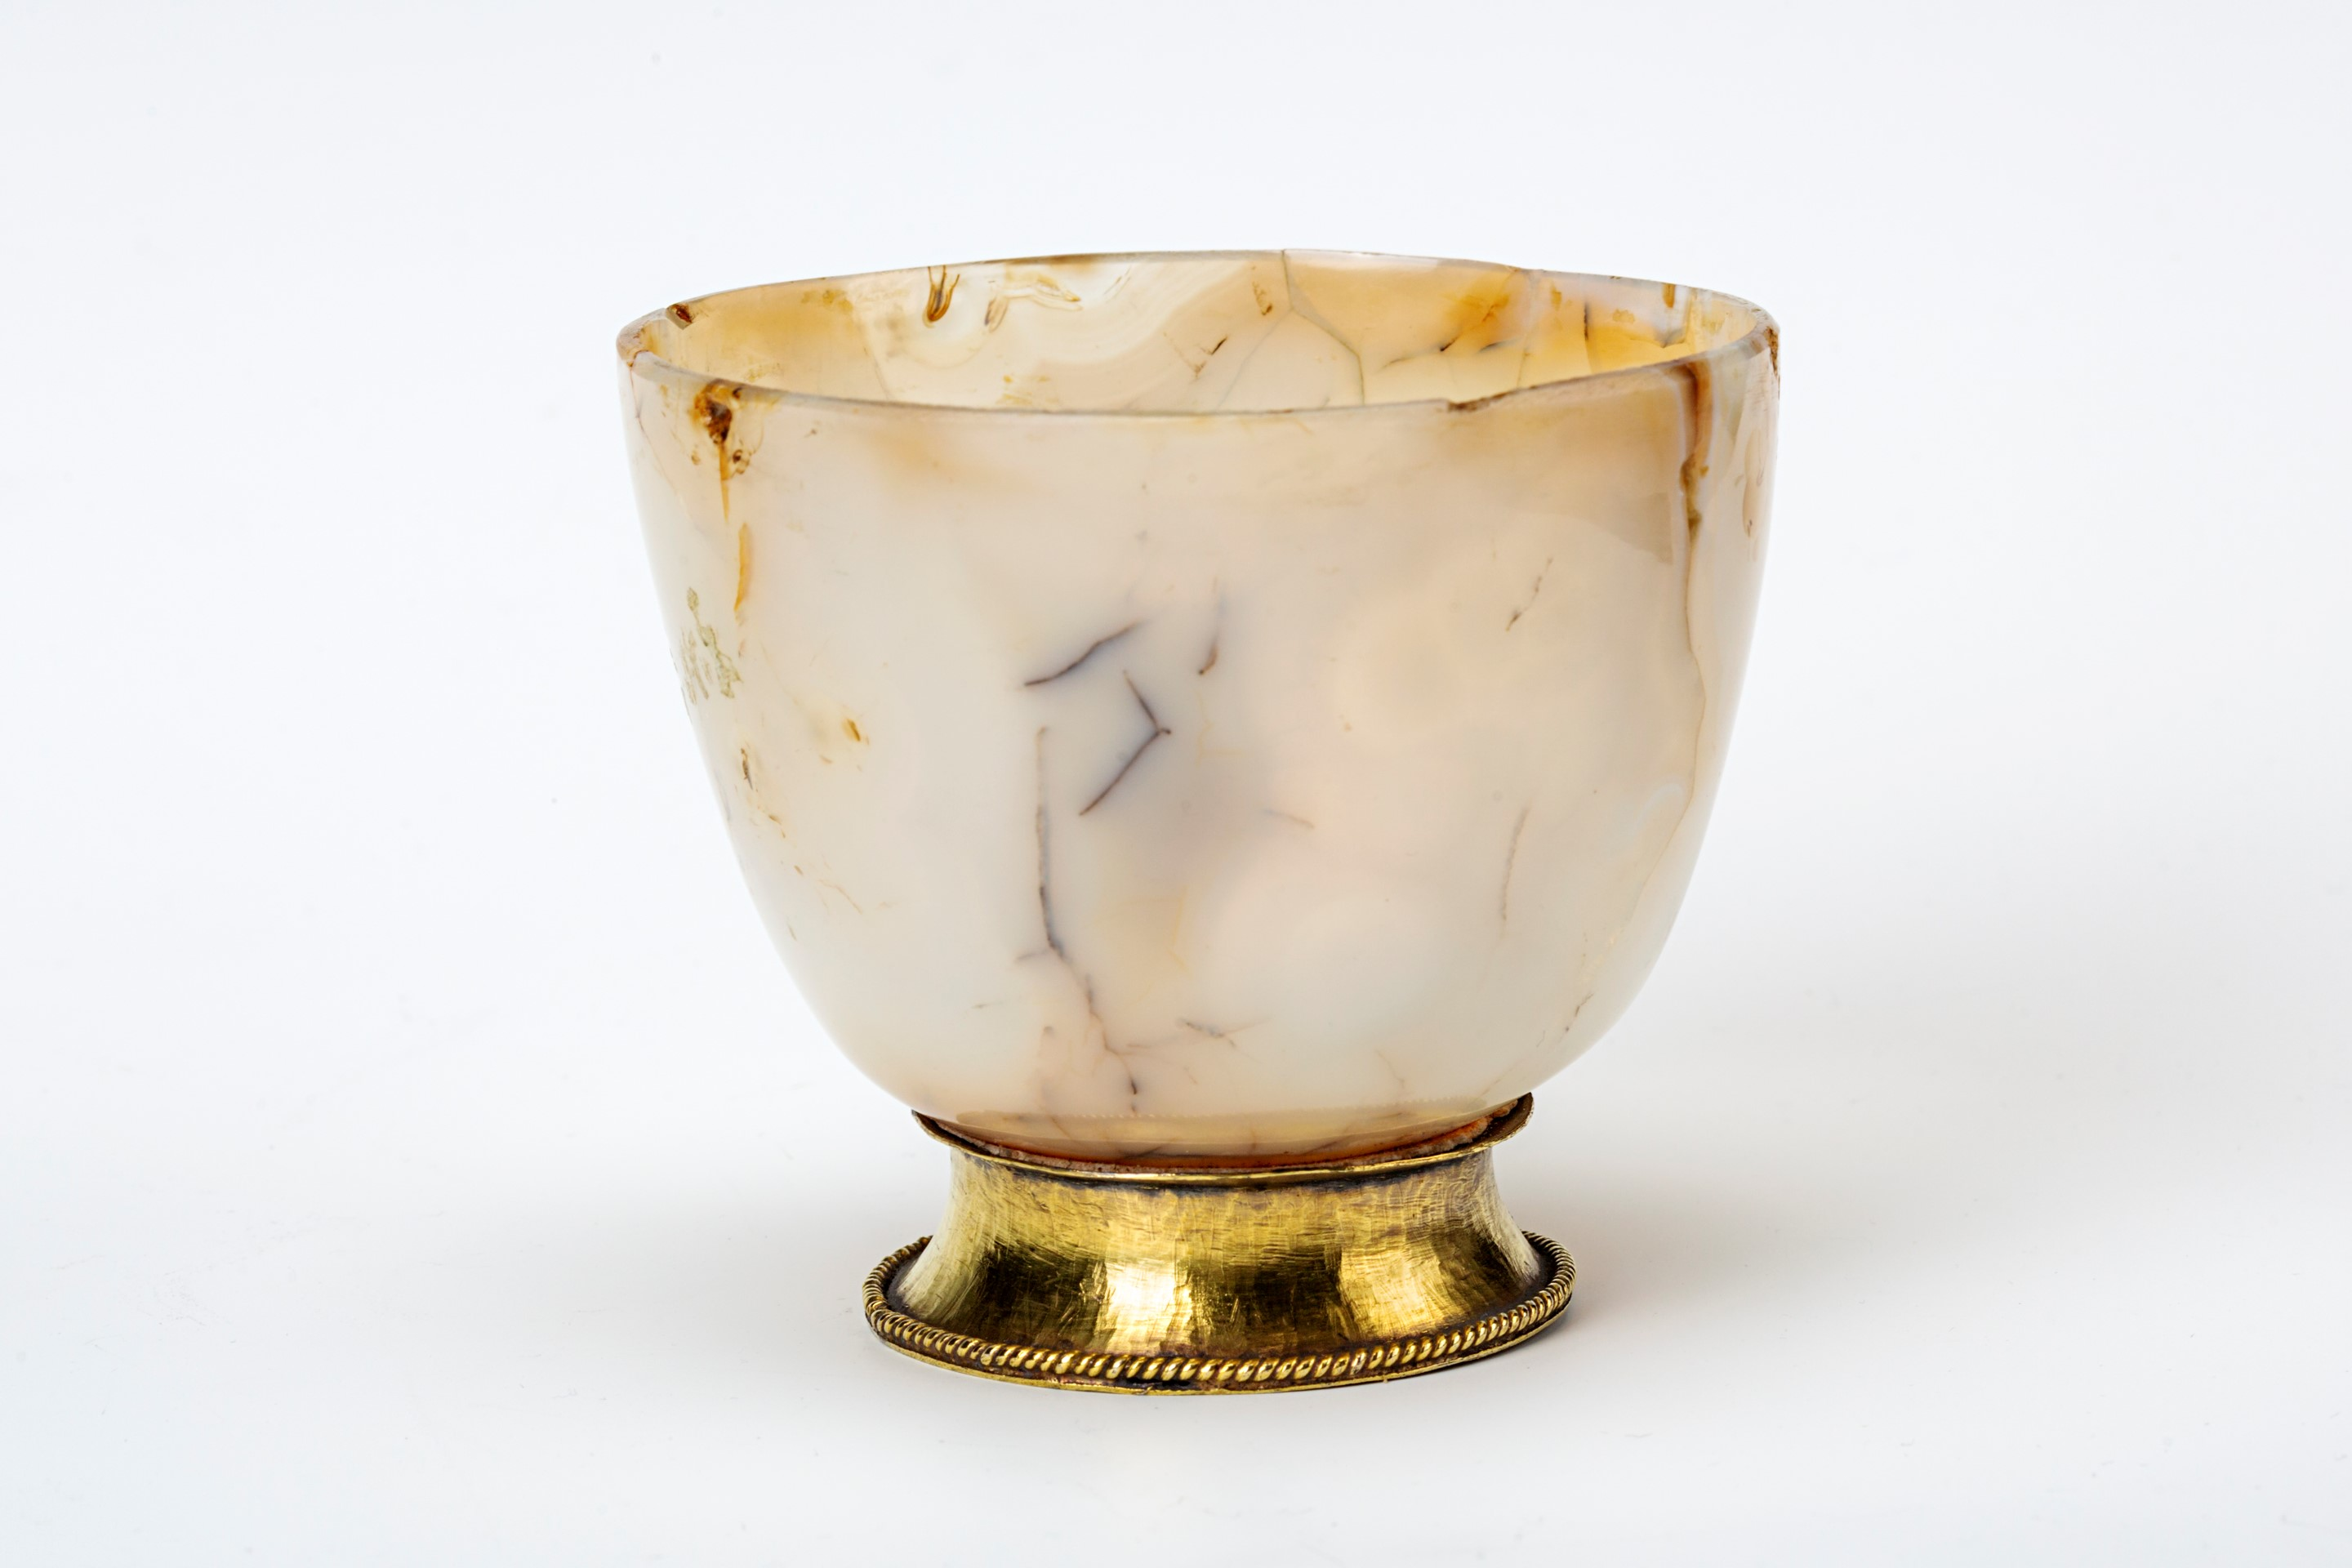 A silver-gilt mounted agate bowl, early 17th Century.